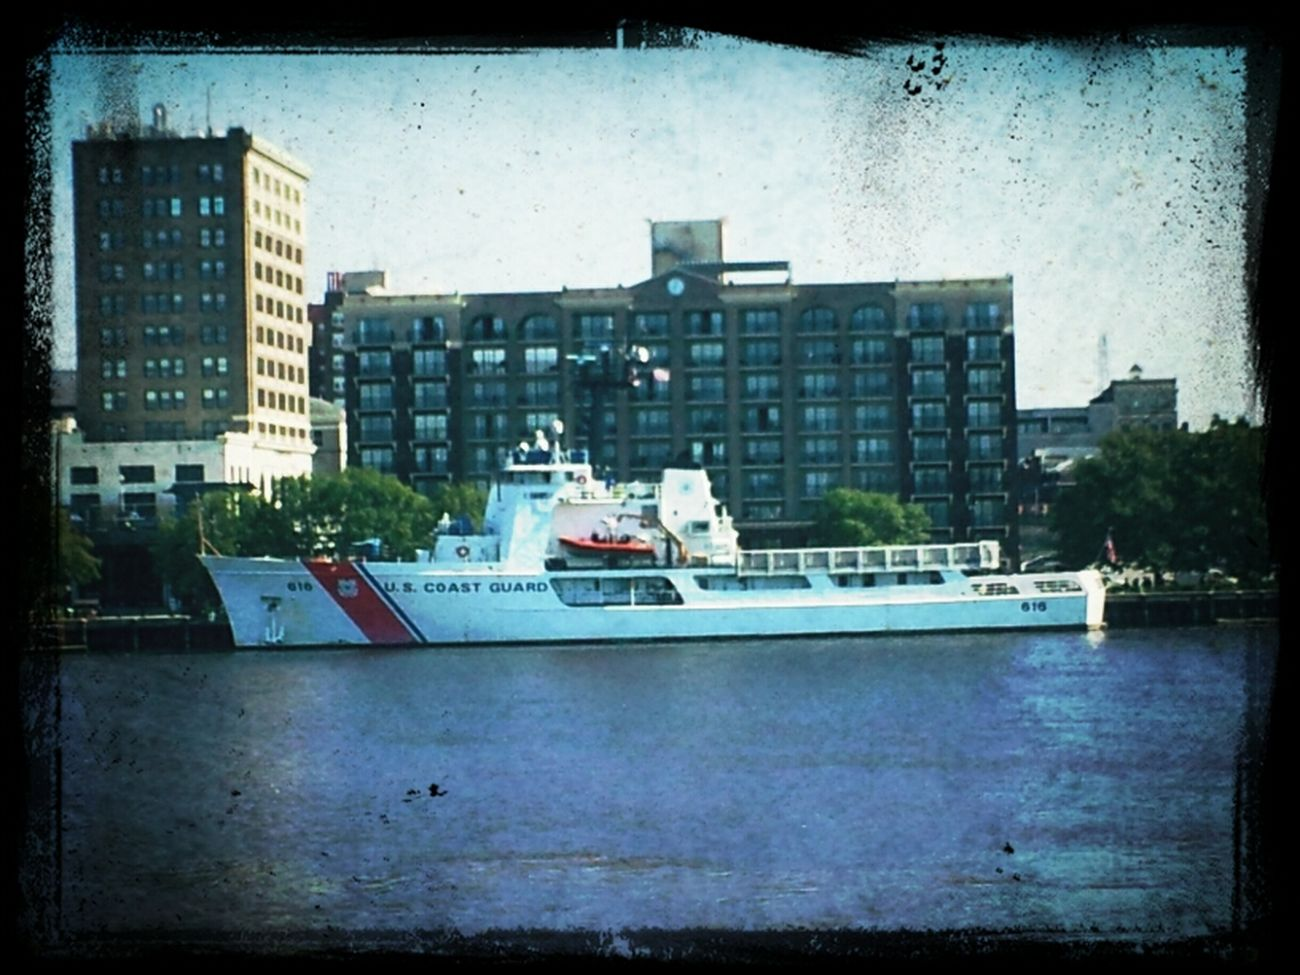 Ship Wilmington Coast Guard